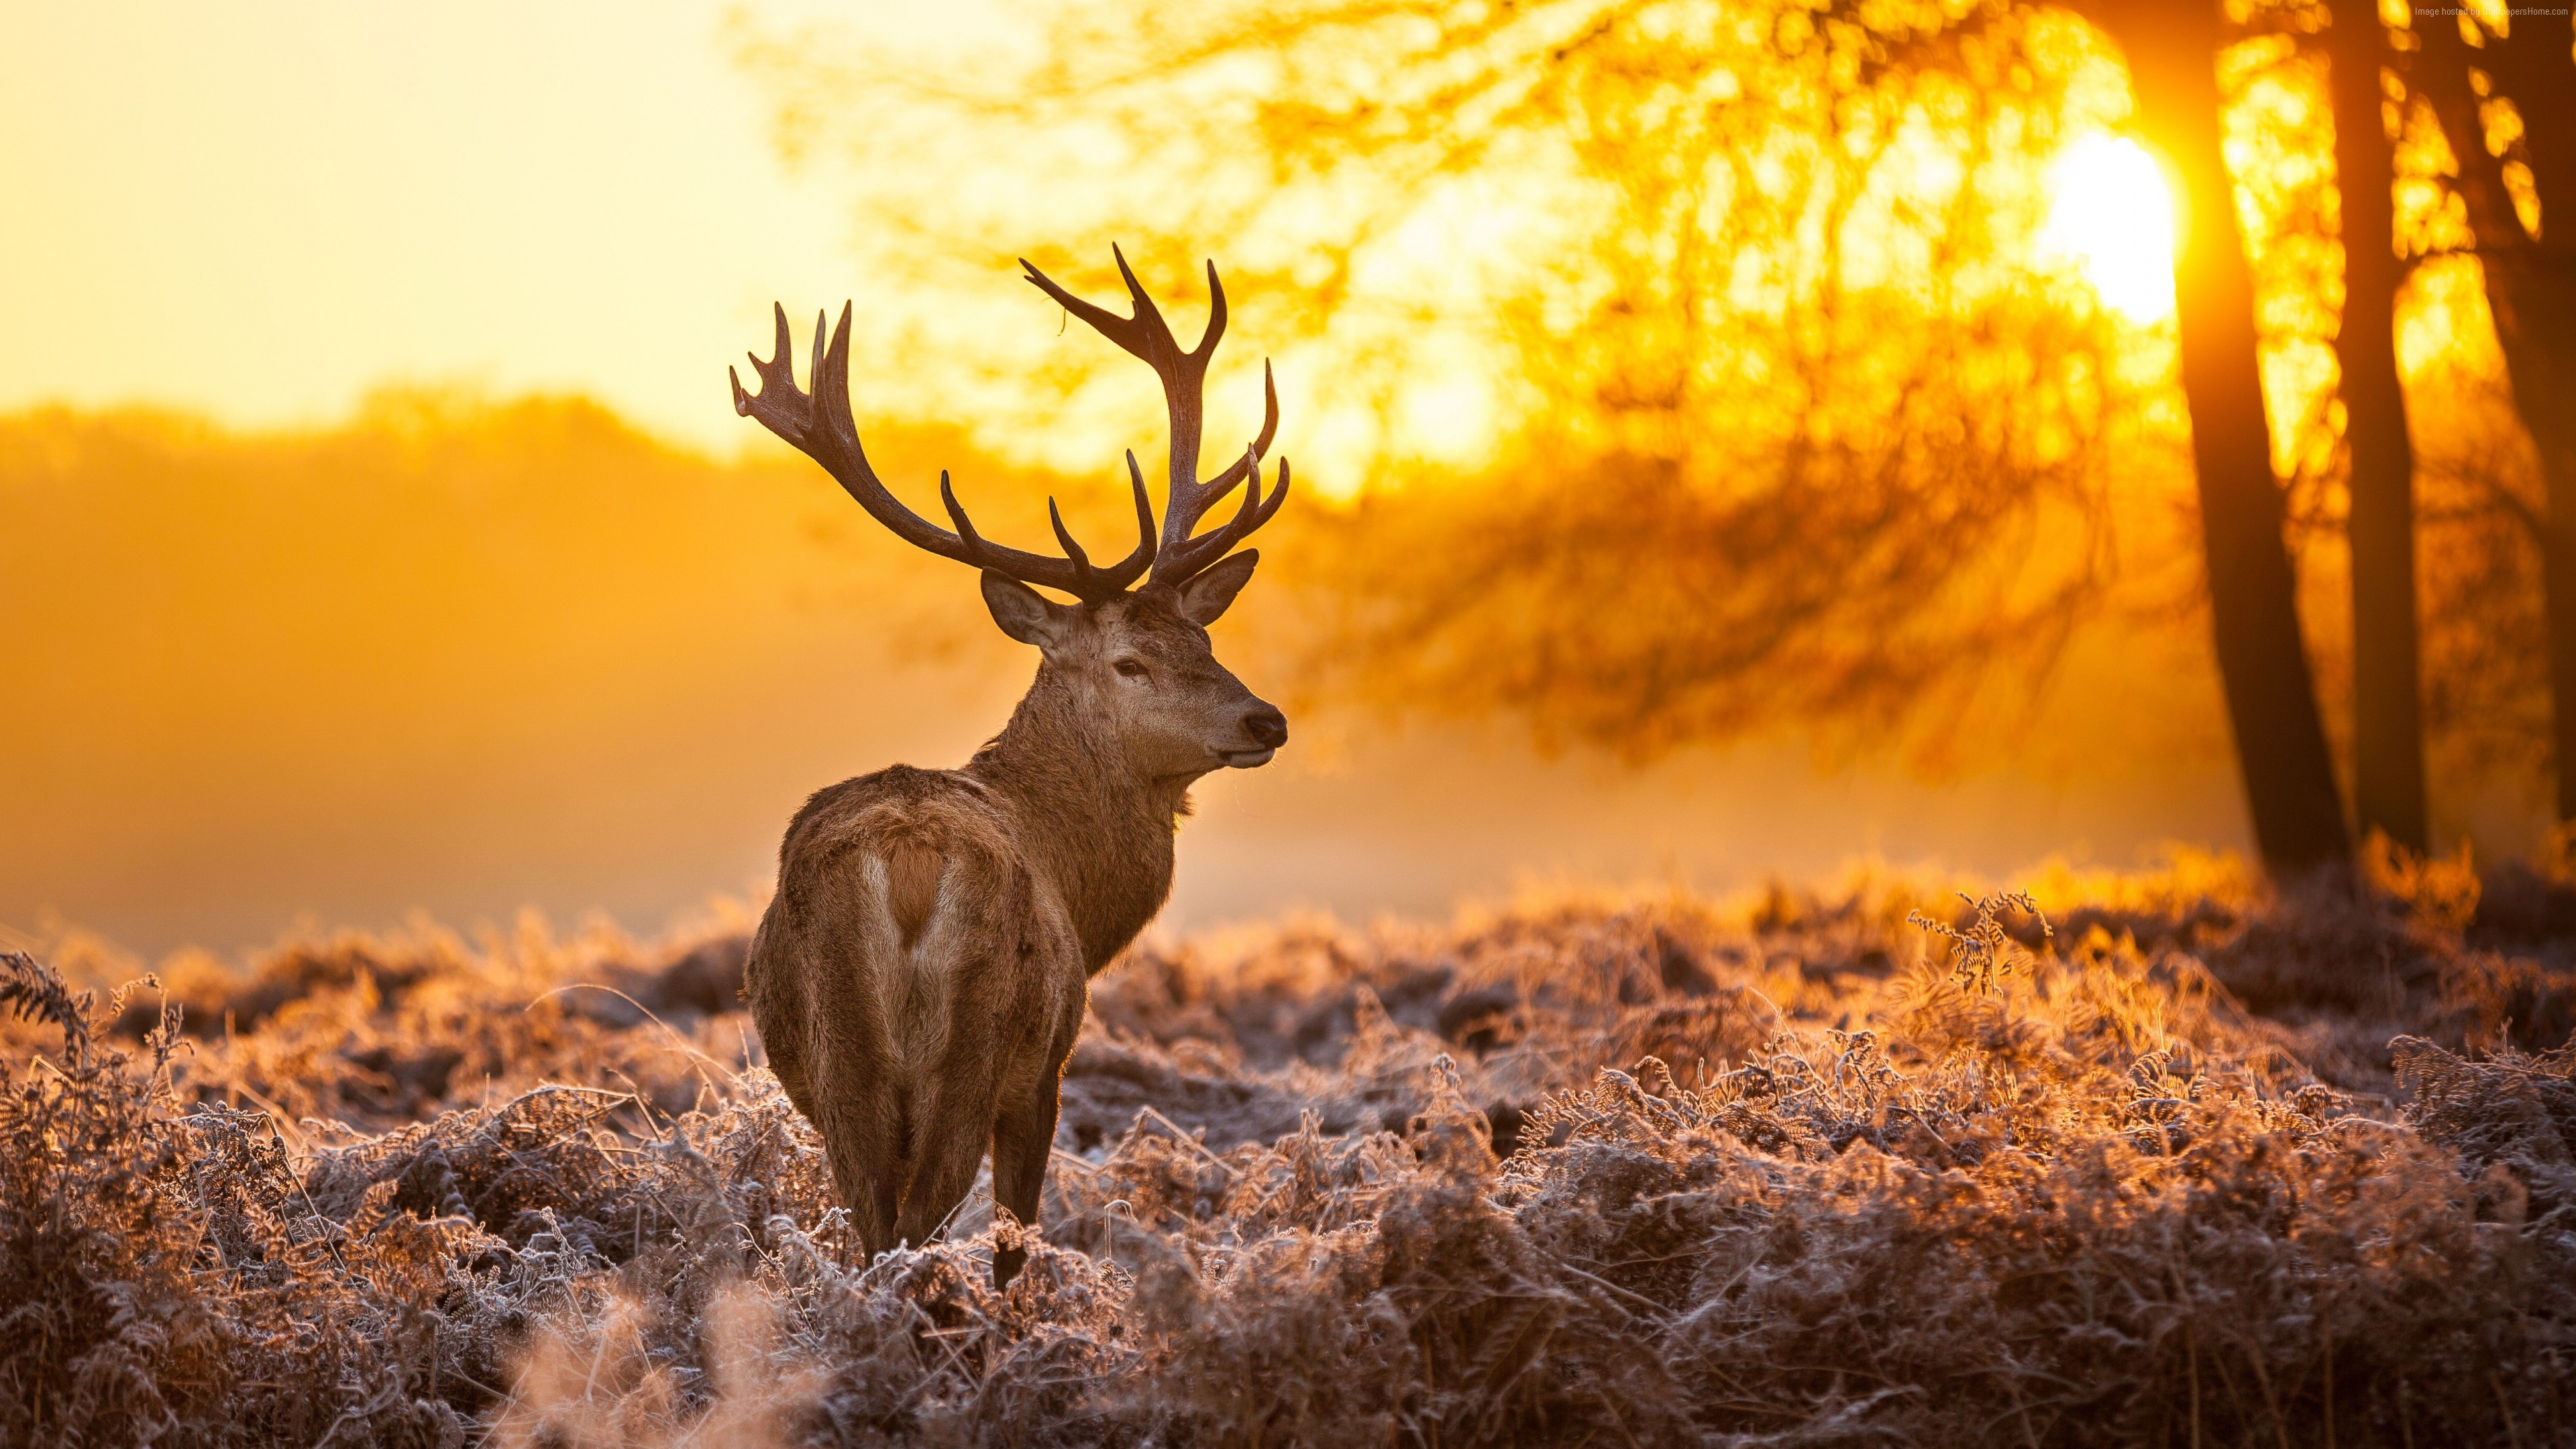 Wallpaper Deer, 4k, HD wallpaper, wild, sun, yellow, nature, winter, Animals